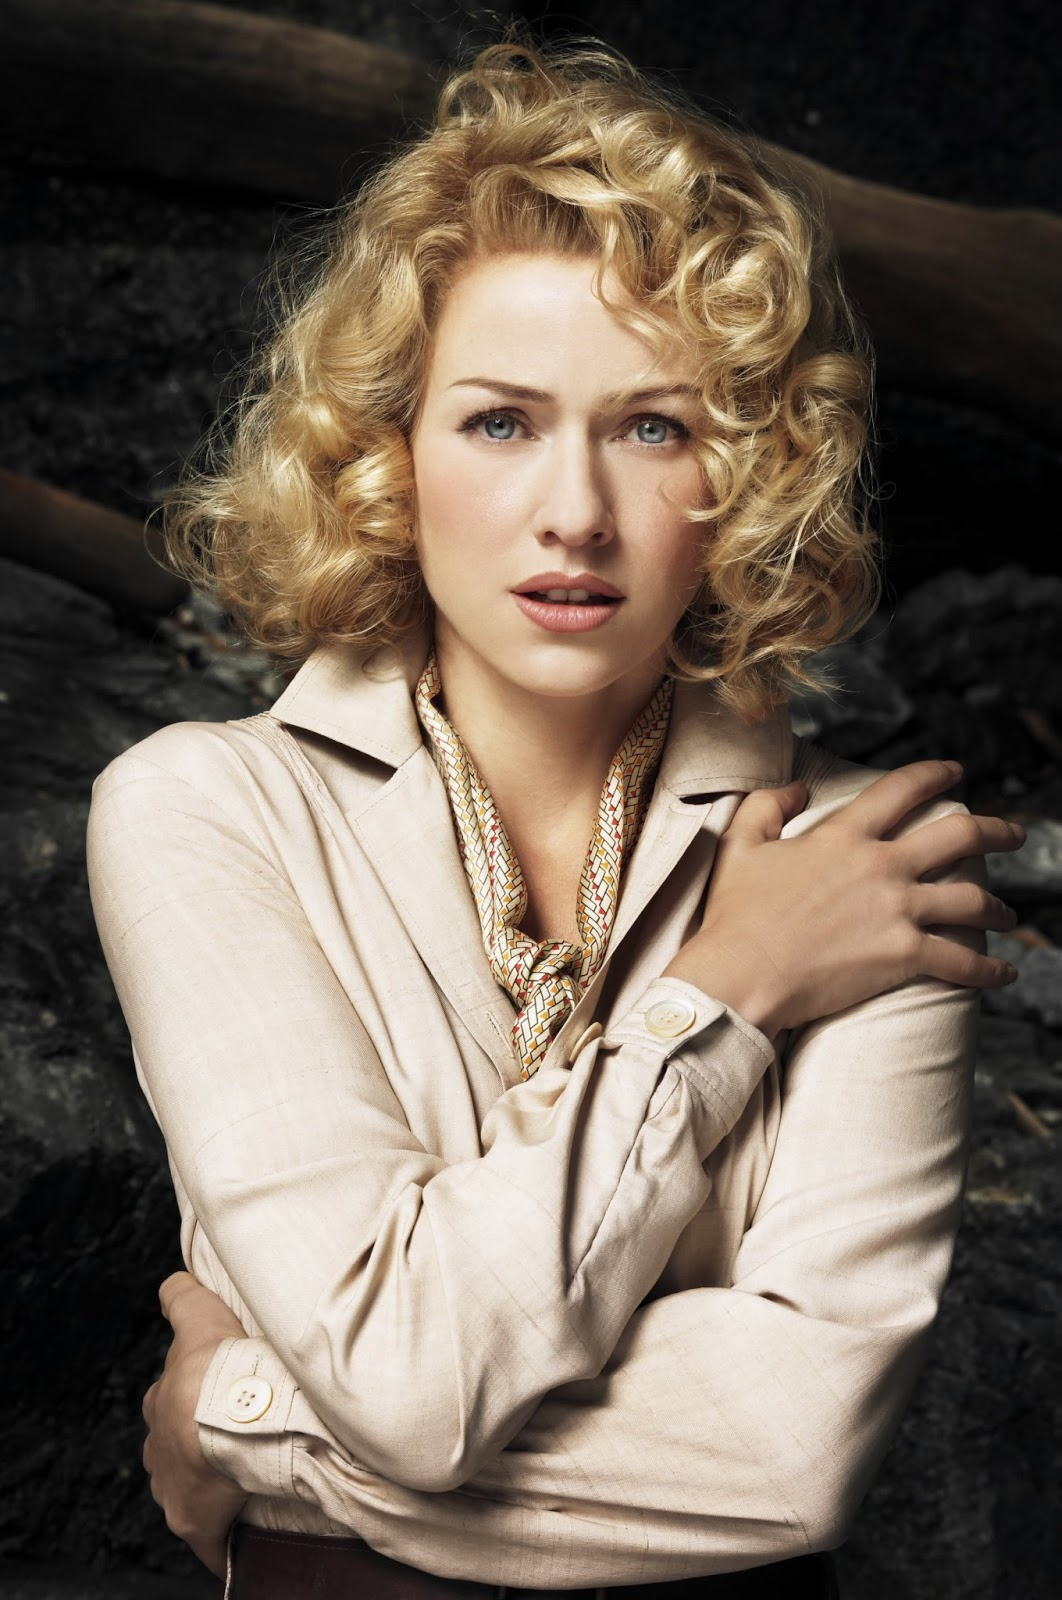 You talent Naomi watts king kong interesting. You